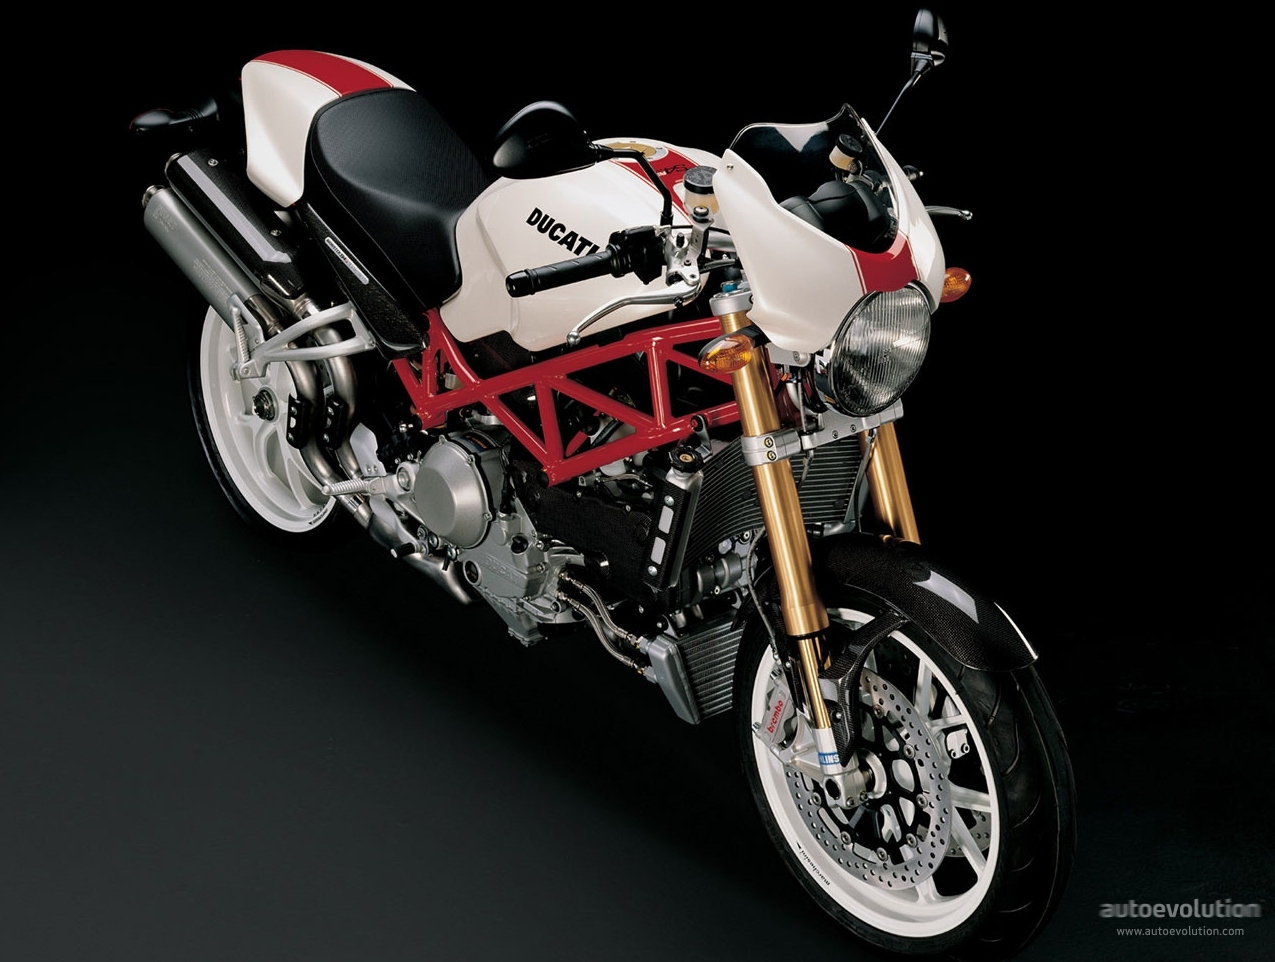 Ducati Monster S4Rs Testastretta 2007 #7